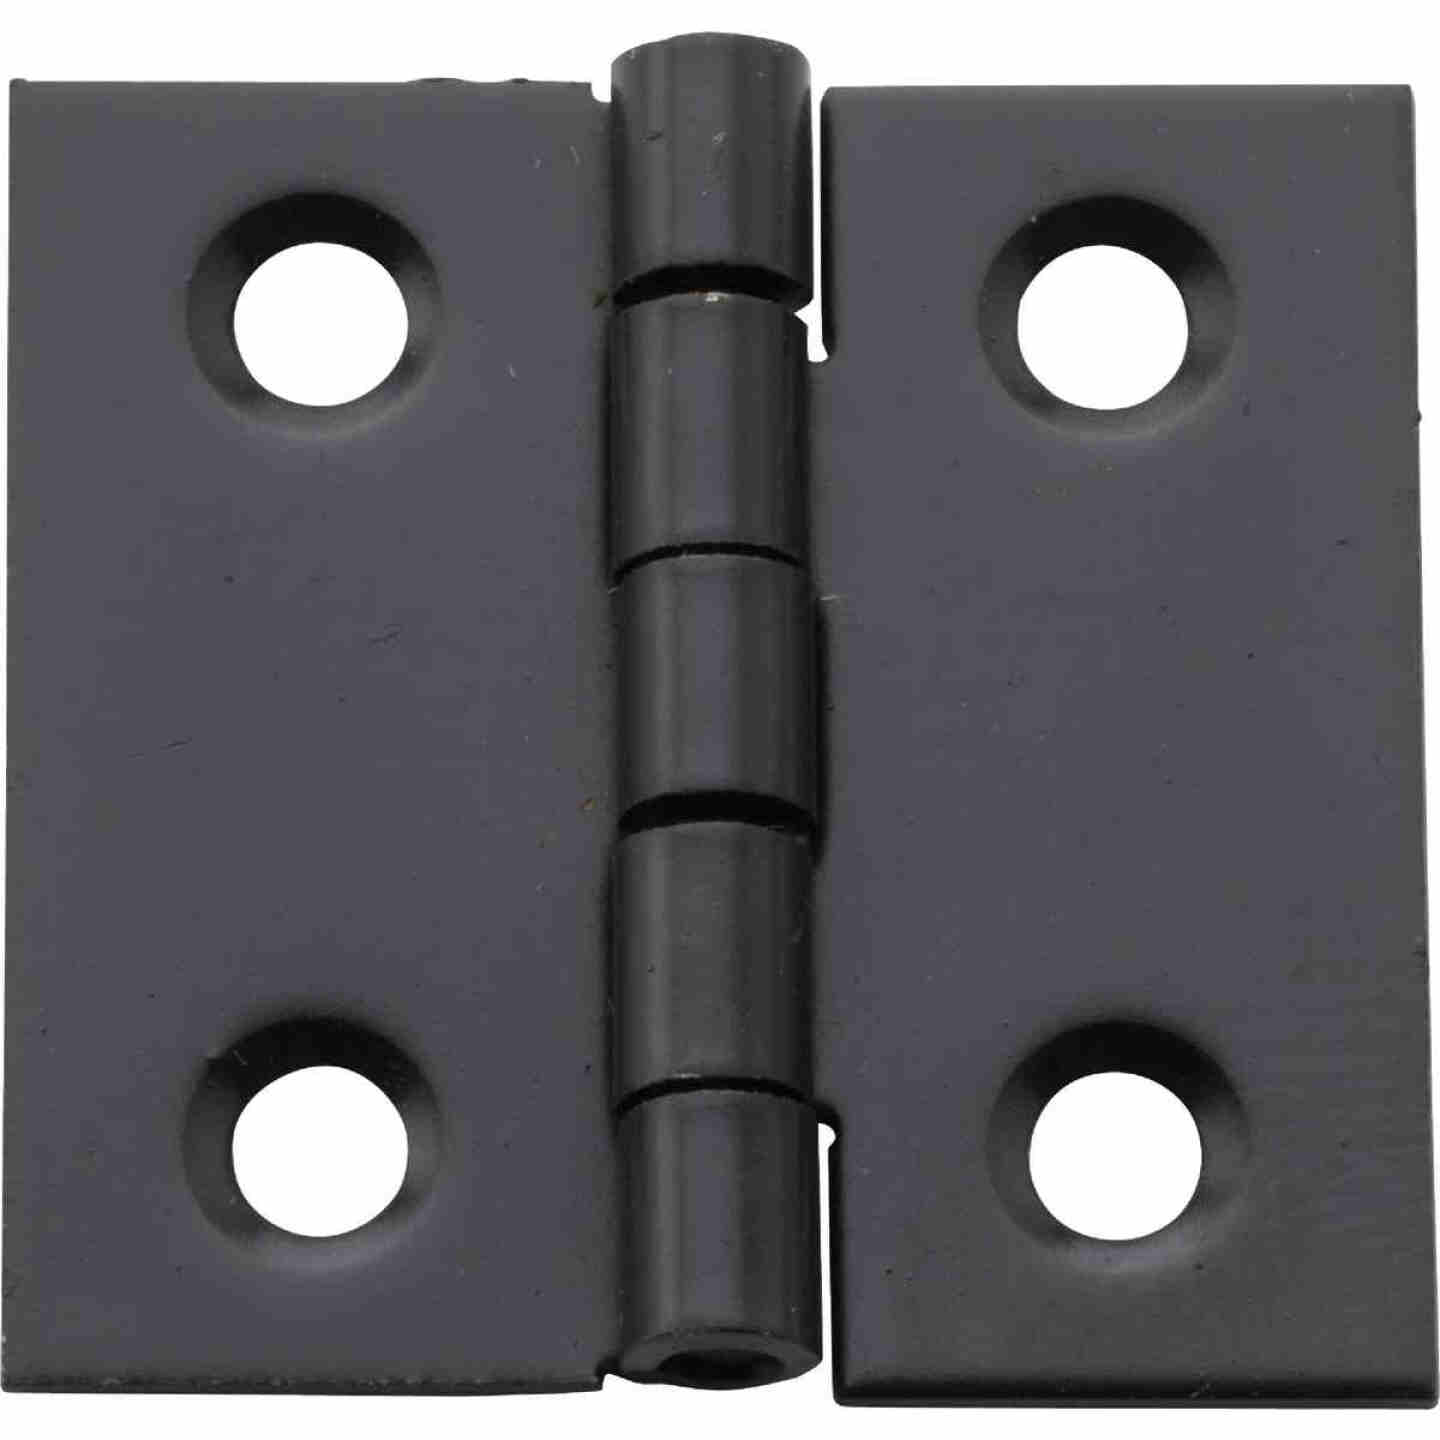 National 1 In. X 1 In. Oil Rubbed Bronze Broad Hinge (4-Pack) Image 1